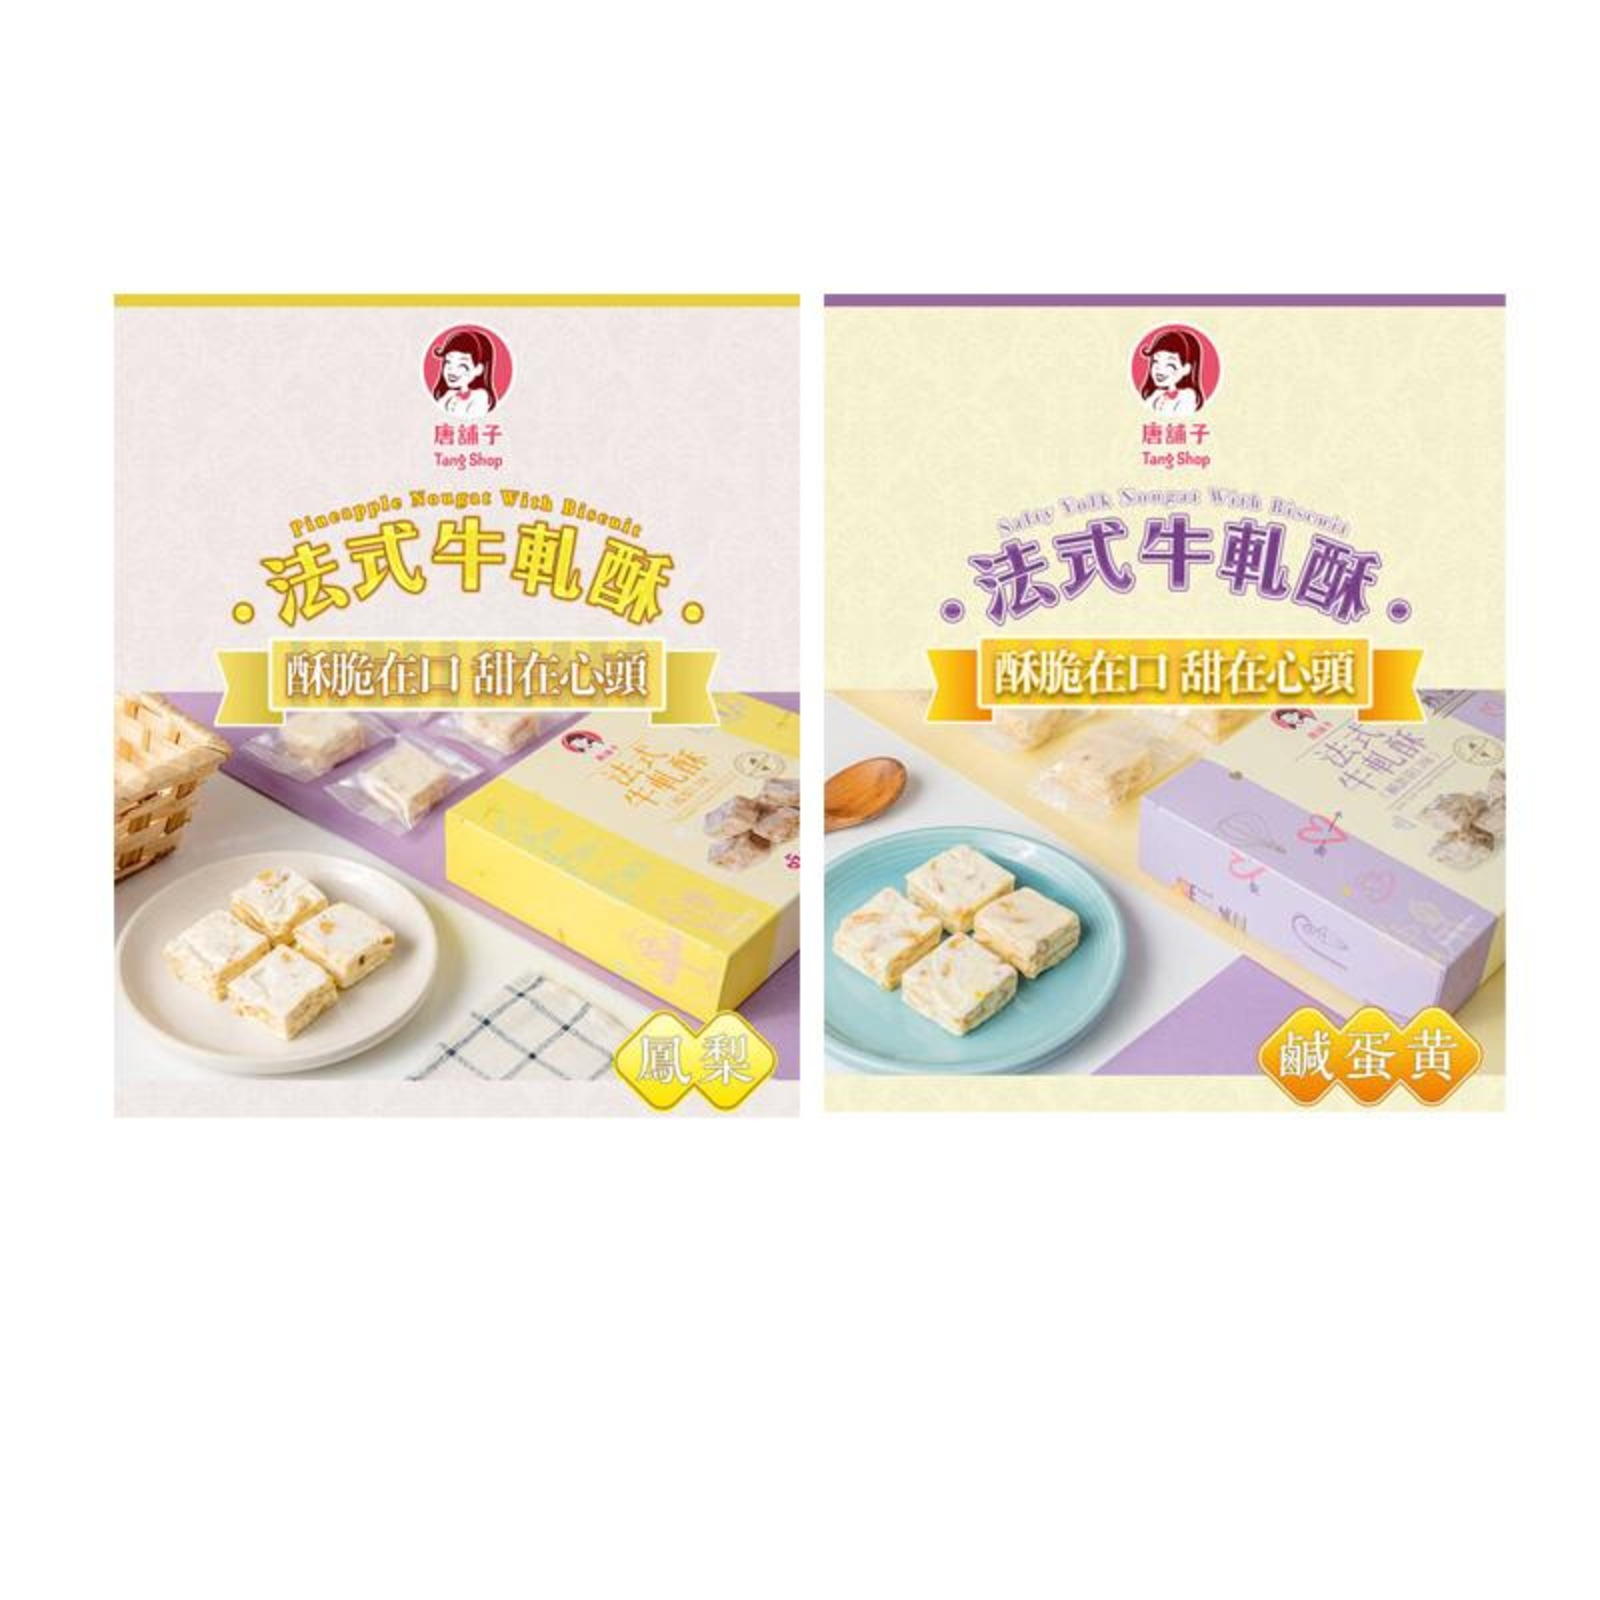 Cher Cher Salted Egg and Pineapple Nougat with Biscuit